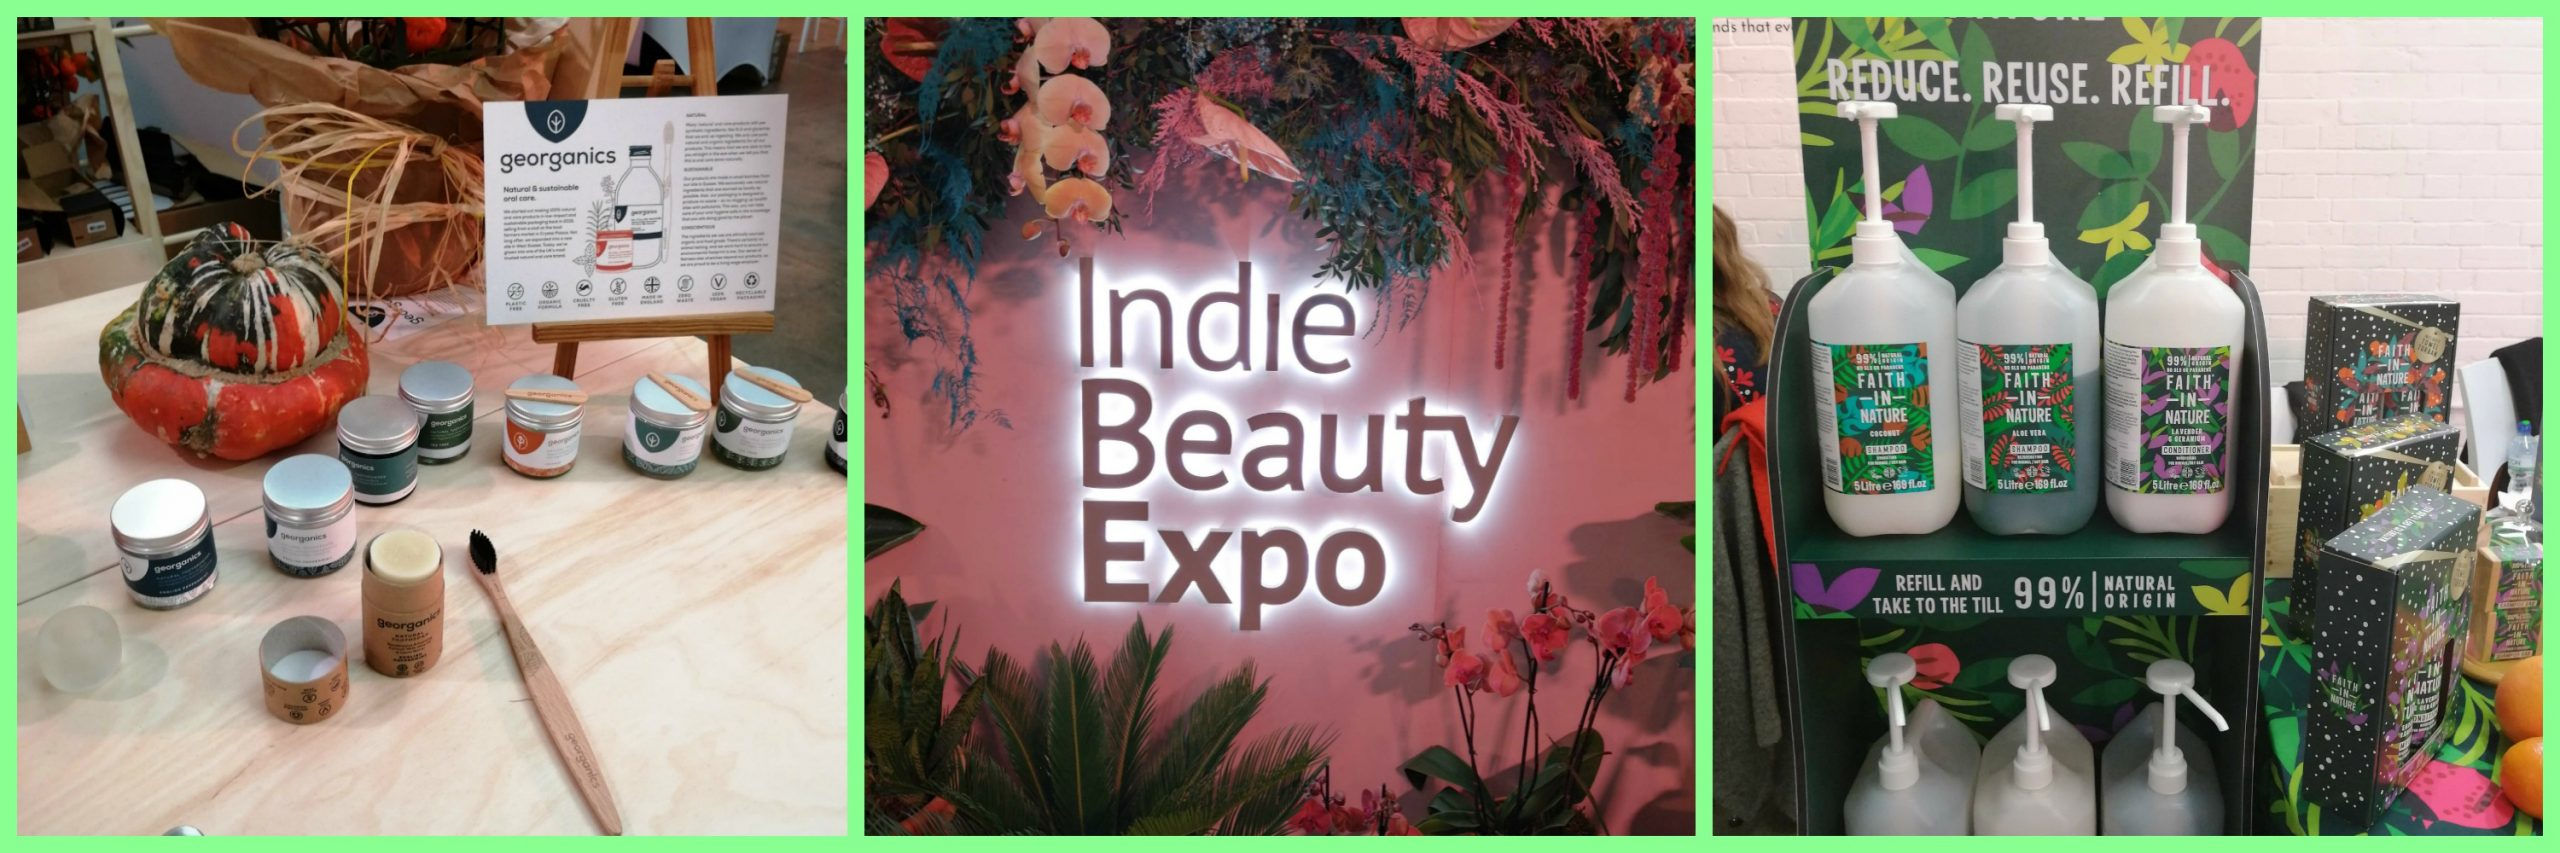 Beauty trends: Exploring the Indie Beauty Expo London 2019.